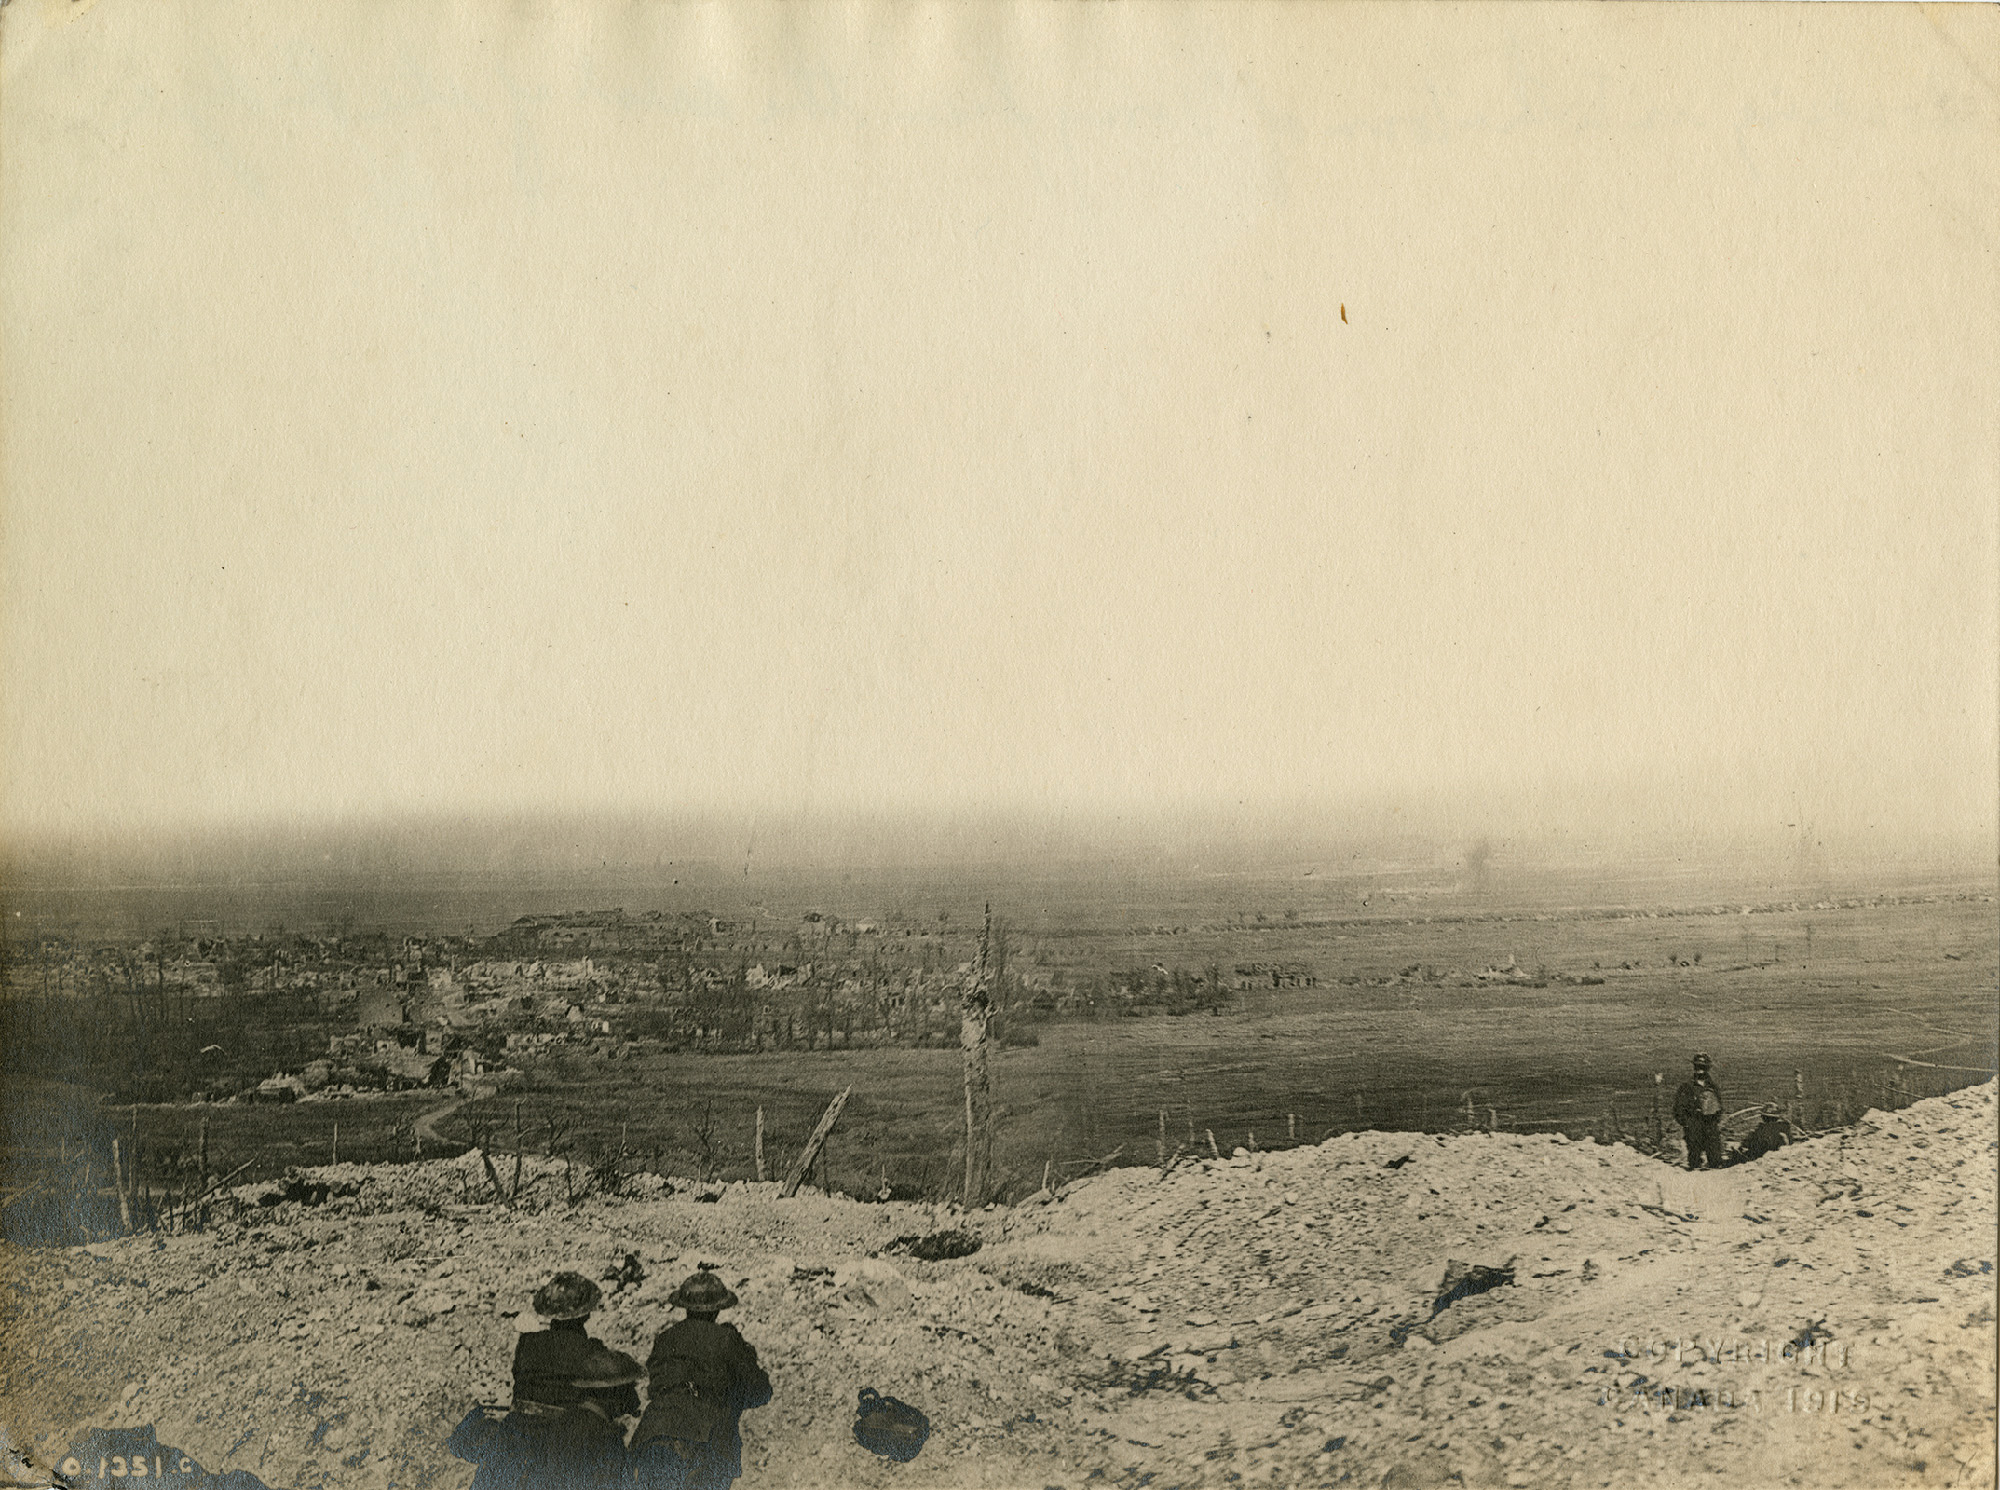 Looking into the town of Vimy from the crest of the Ridge.